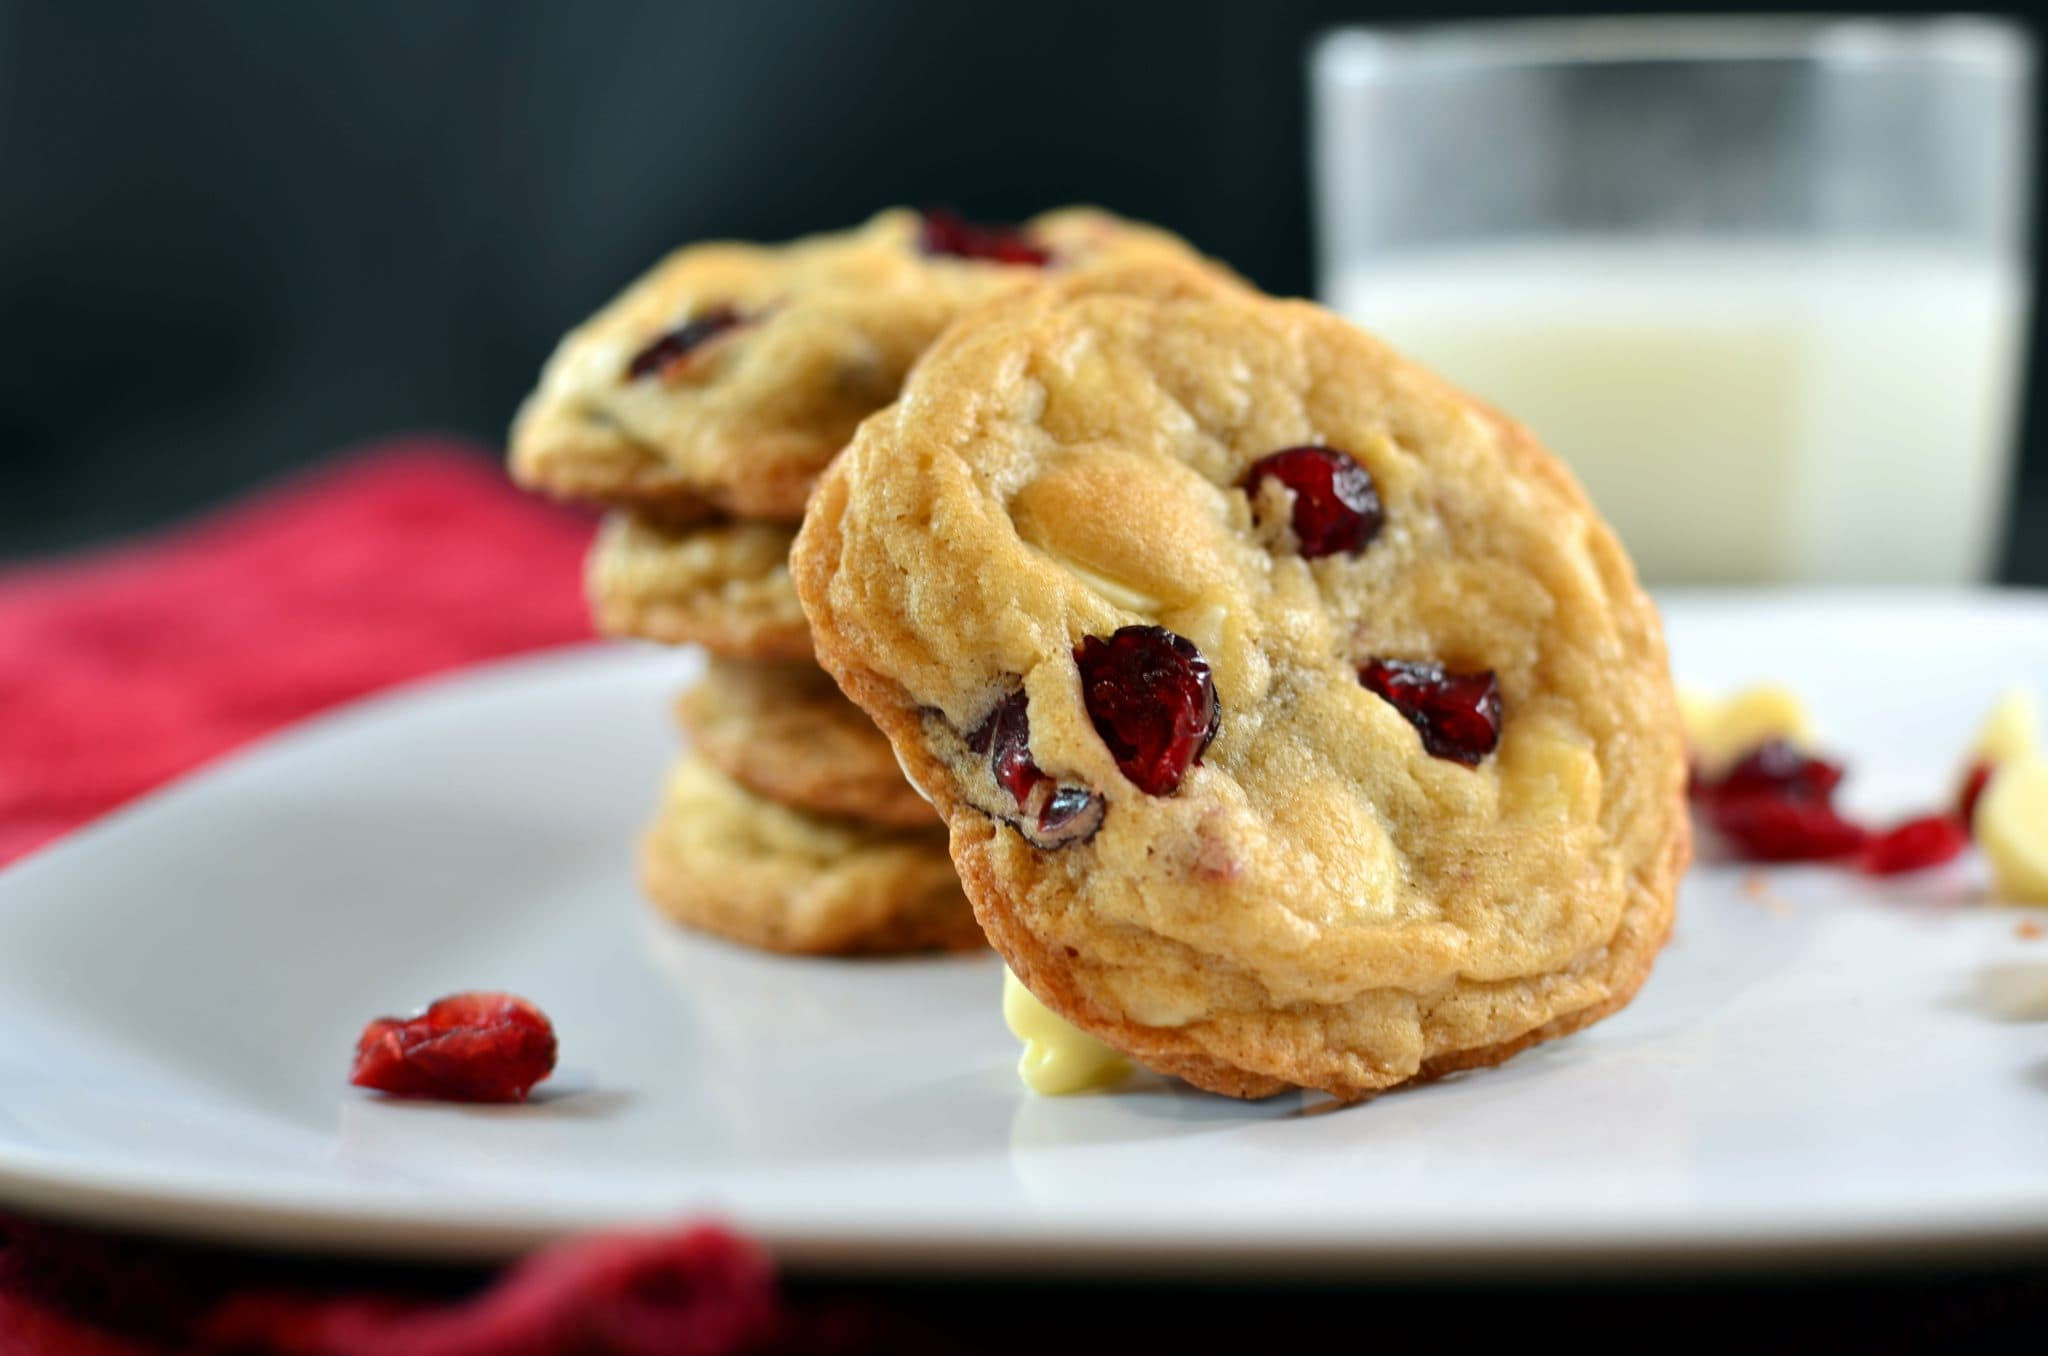 White Chocolate, Macadamia Nut, and Cranberry Cookies